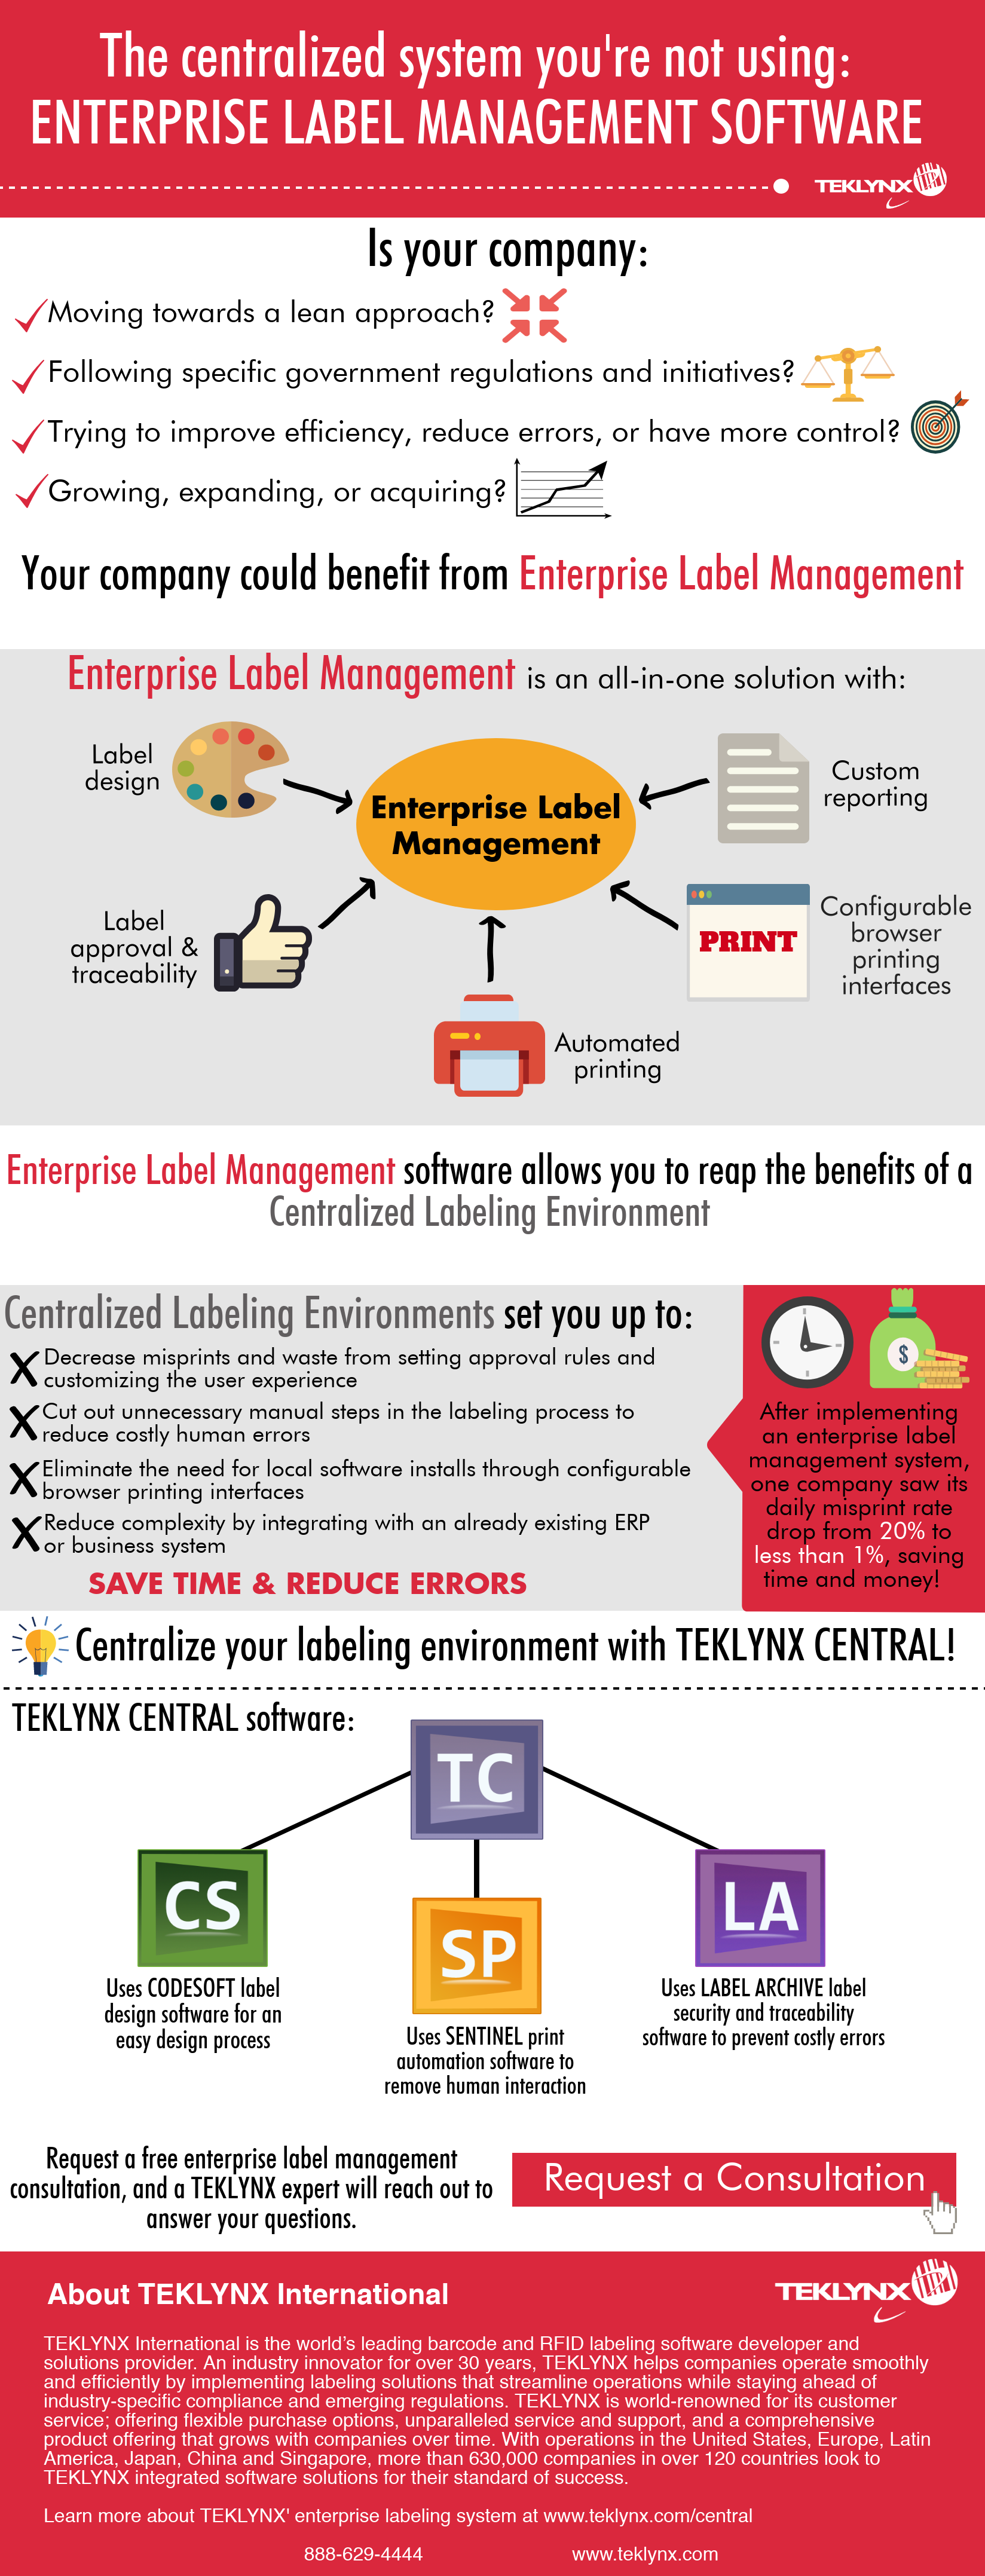 The centralized system you're not using: Enterprise Label Management Software